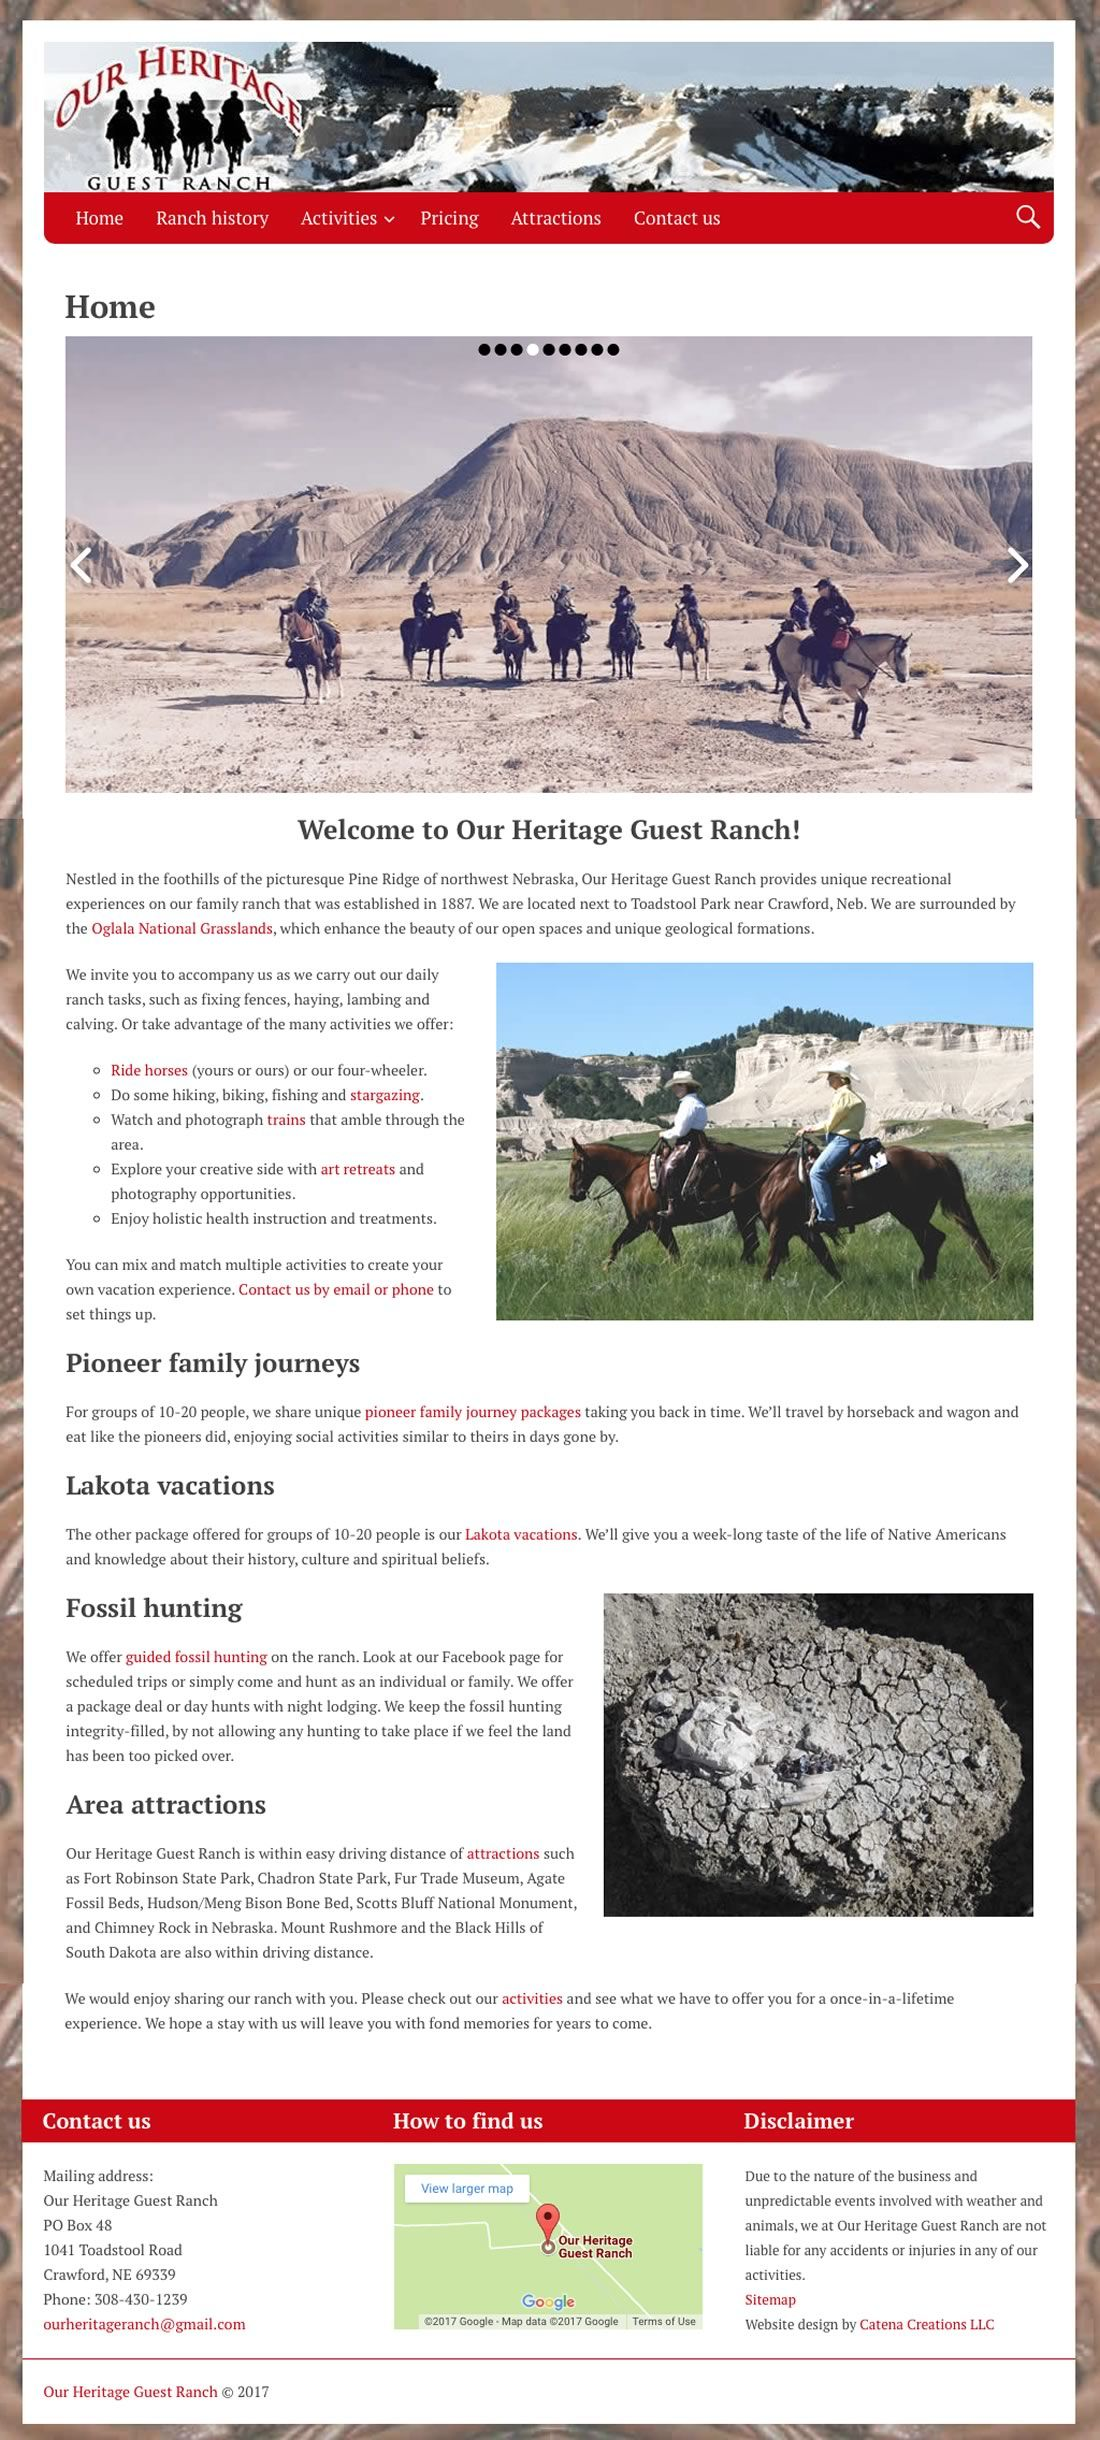 Our Heritage Guest Ranch website